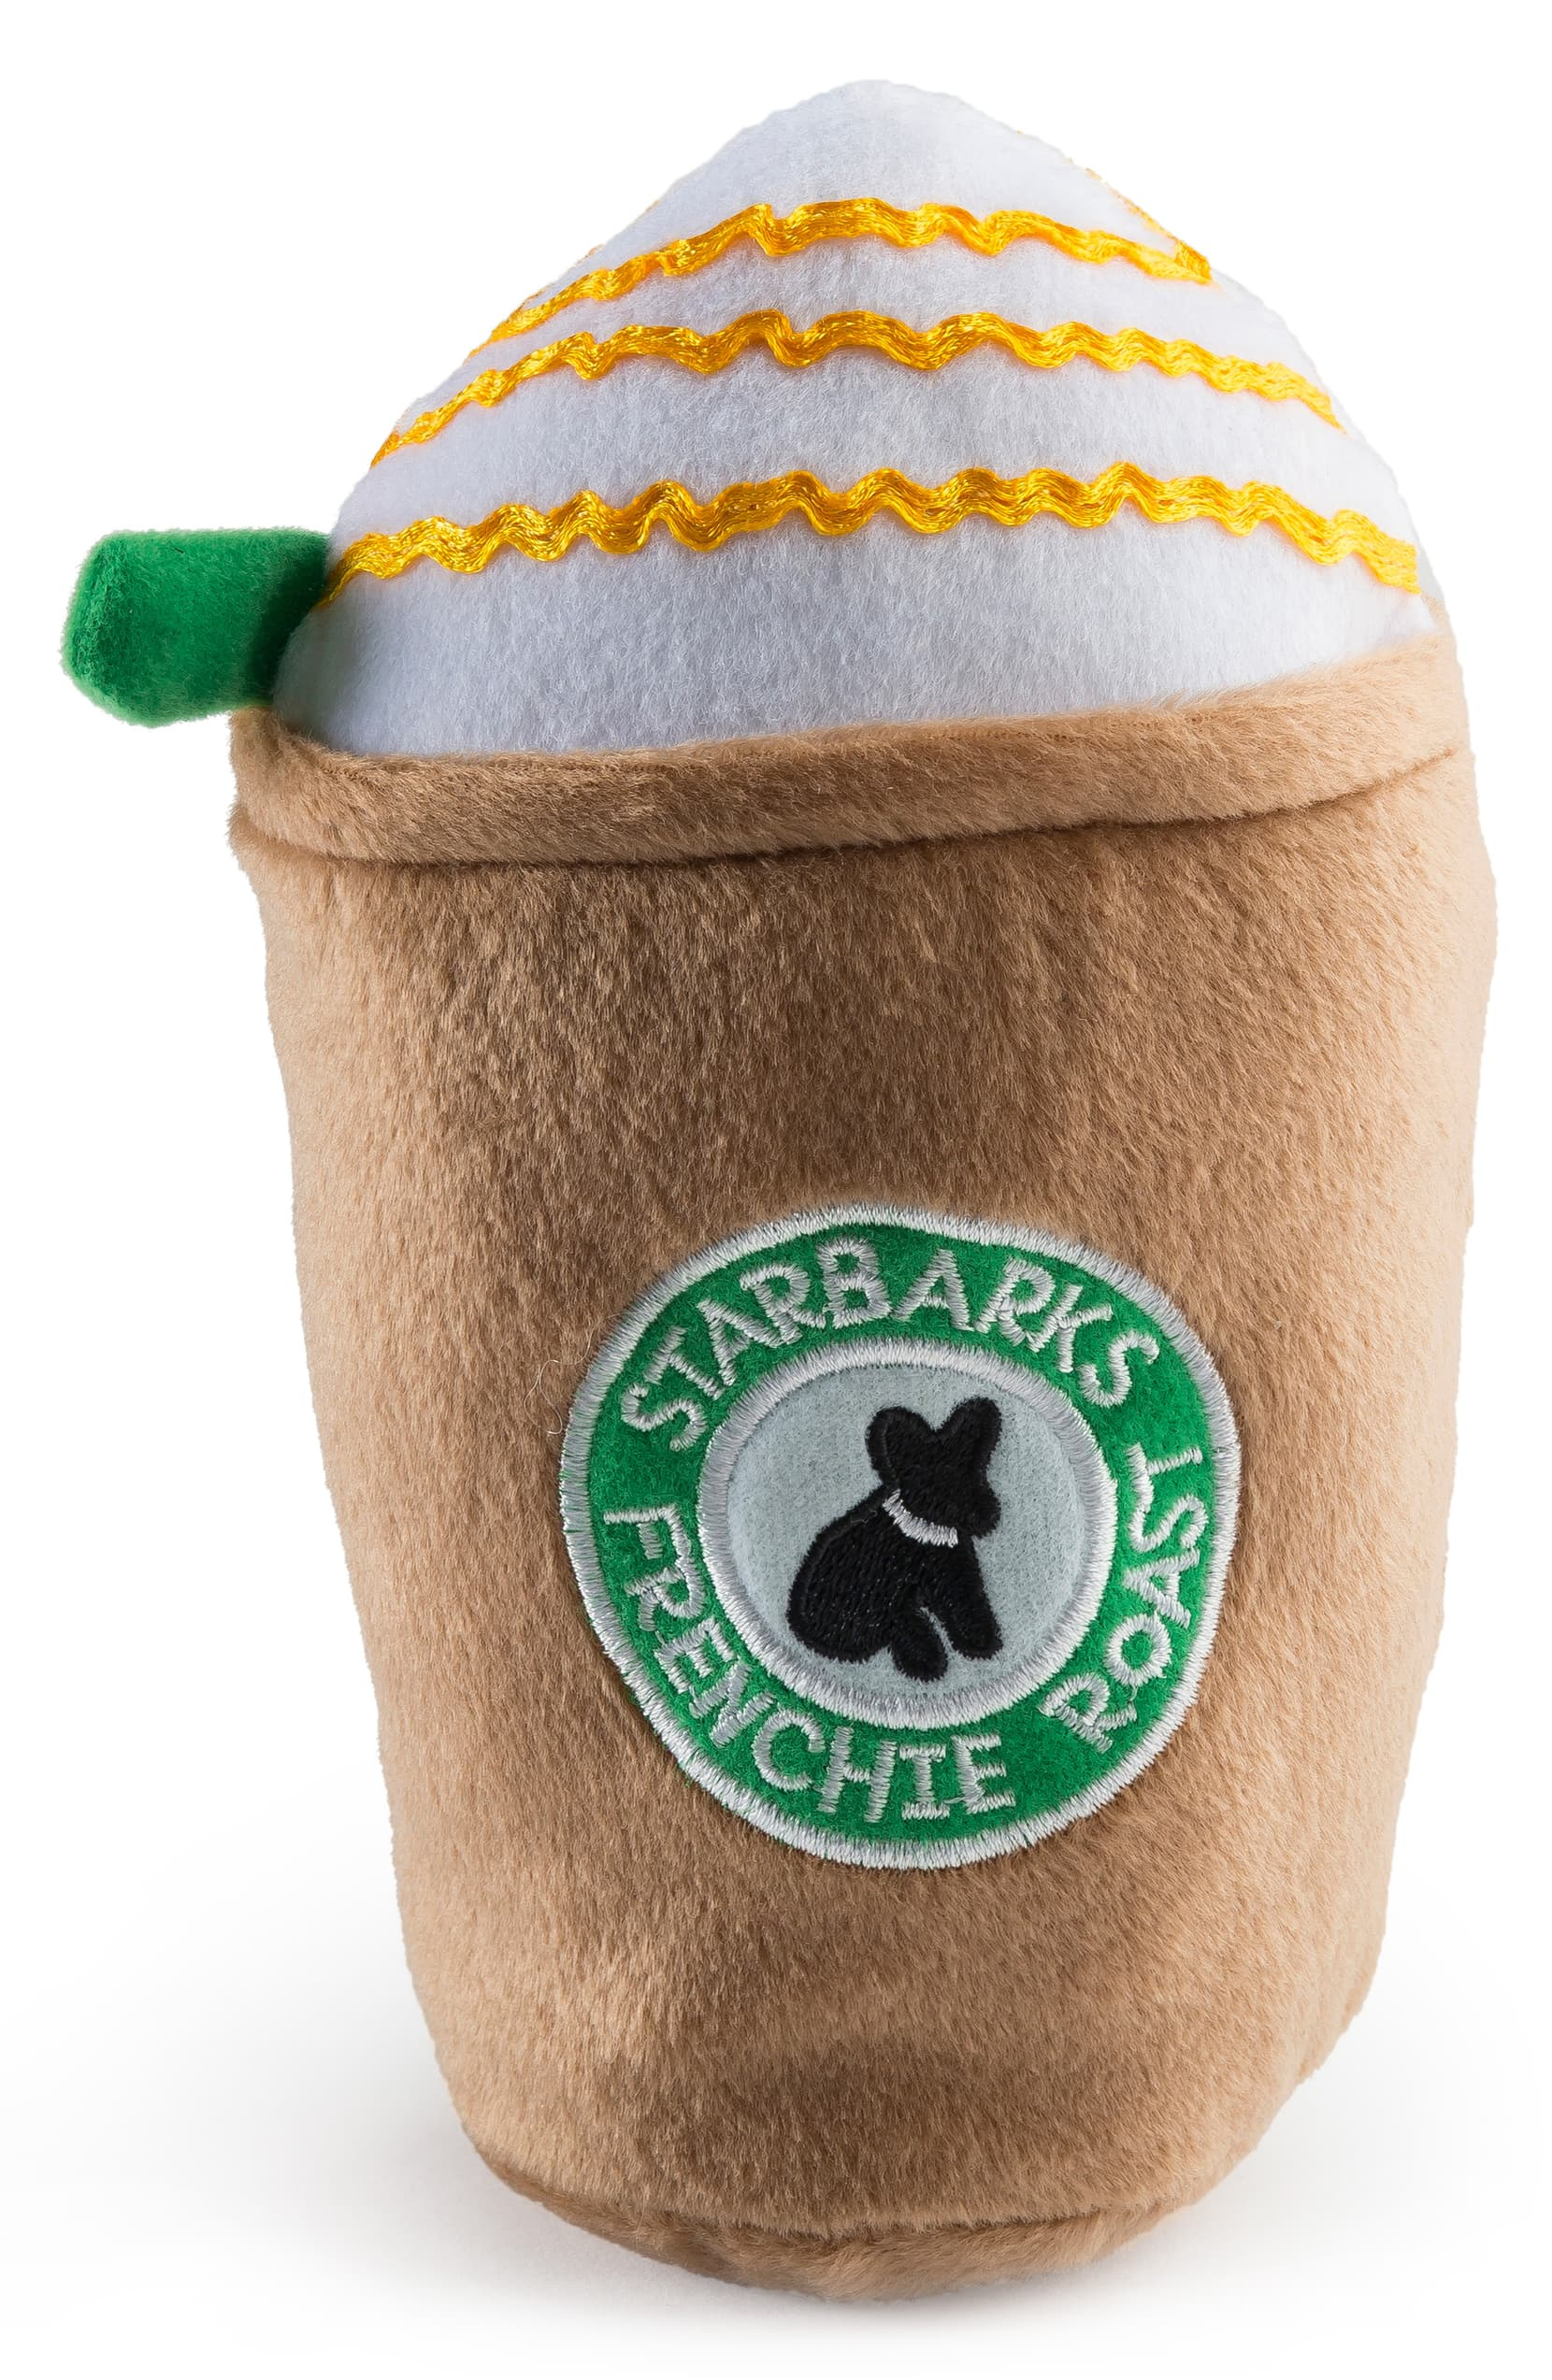 Haute Diggity Dog STARBARKS Coffee Small Plush Dog Toy